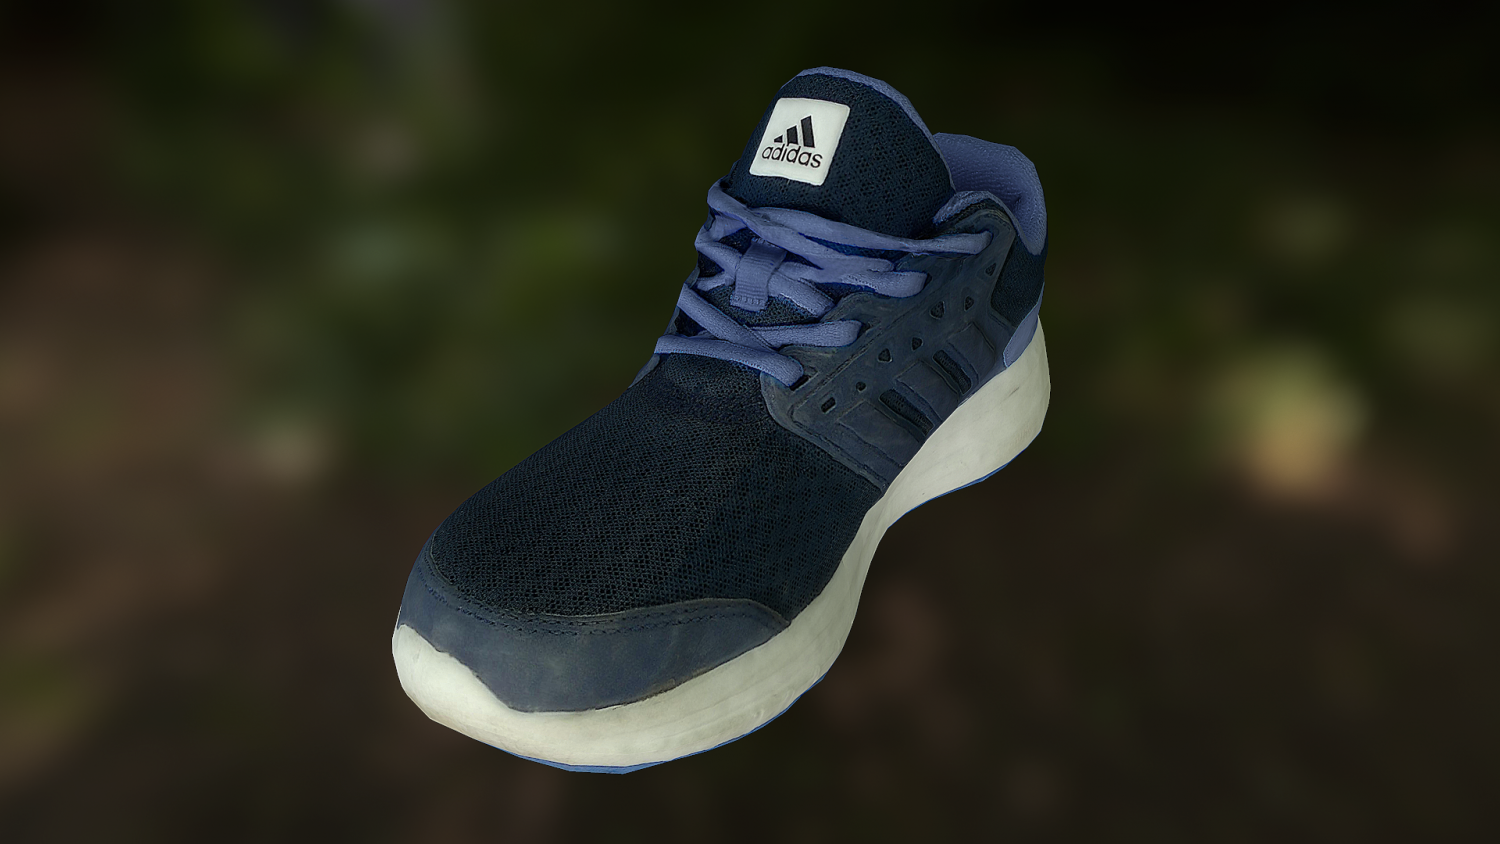 Adidas shoe low poly 3D Model in Clothing 3DExport